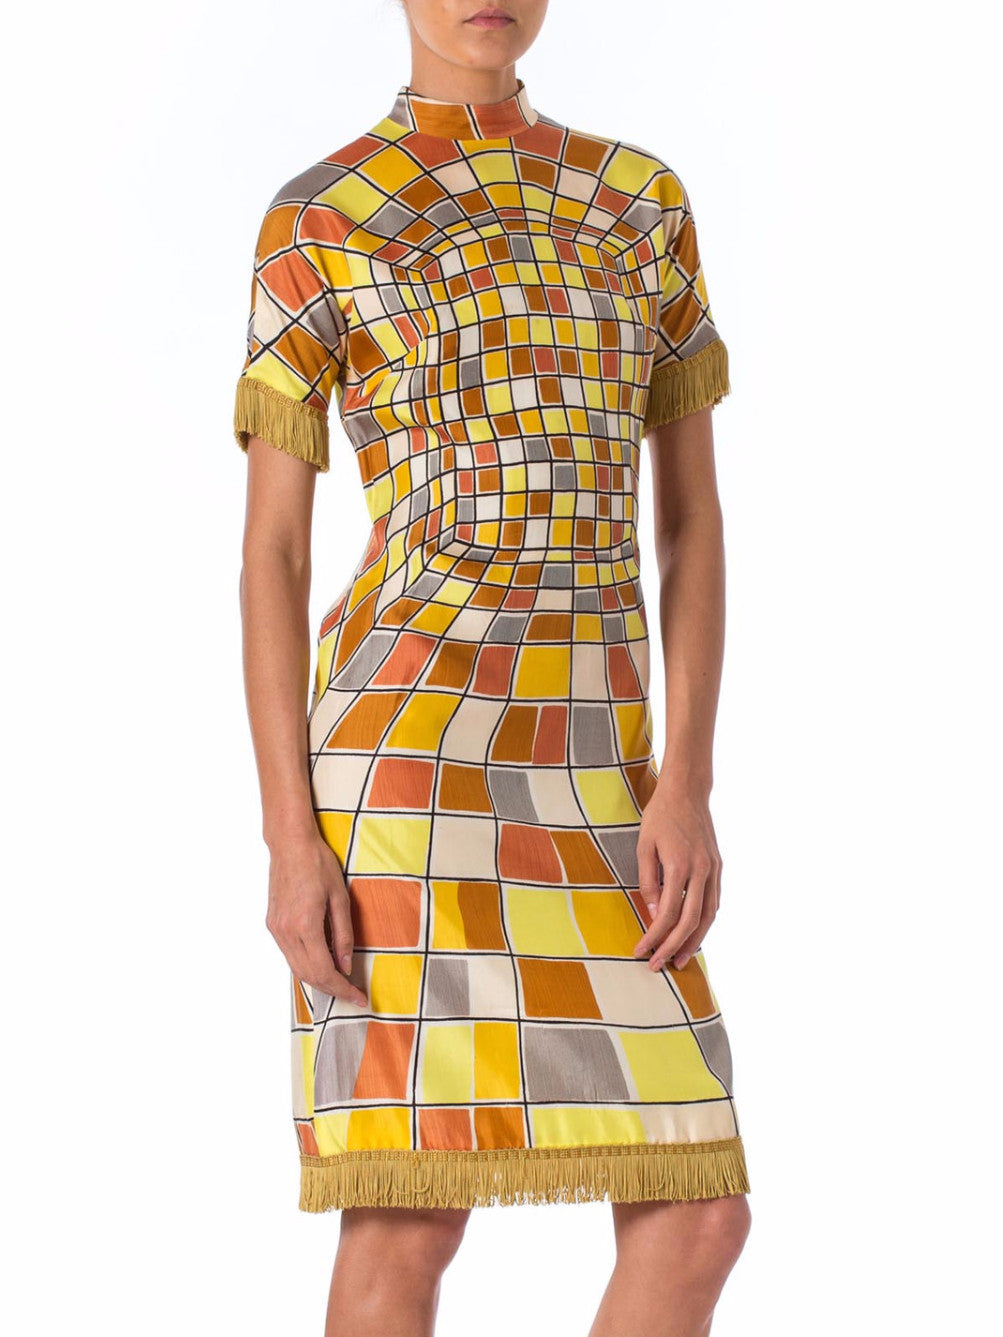 1960s OP'Art Optical Geo Printed Short Sleeve with Fringes Dress